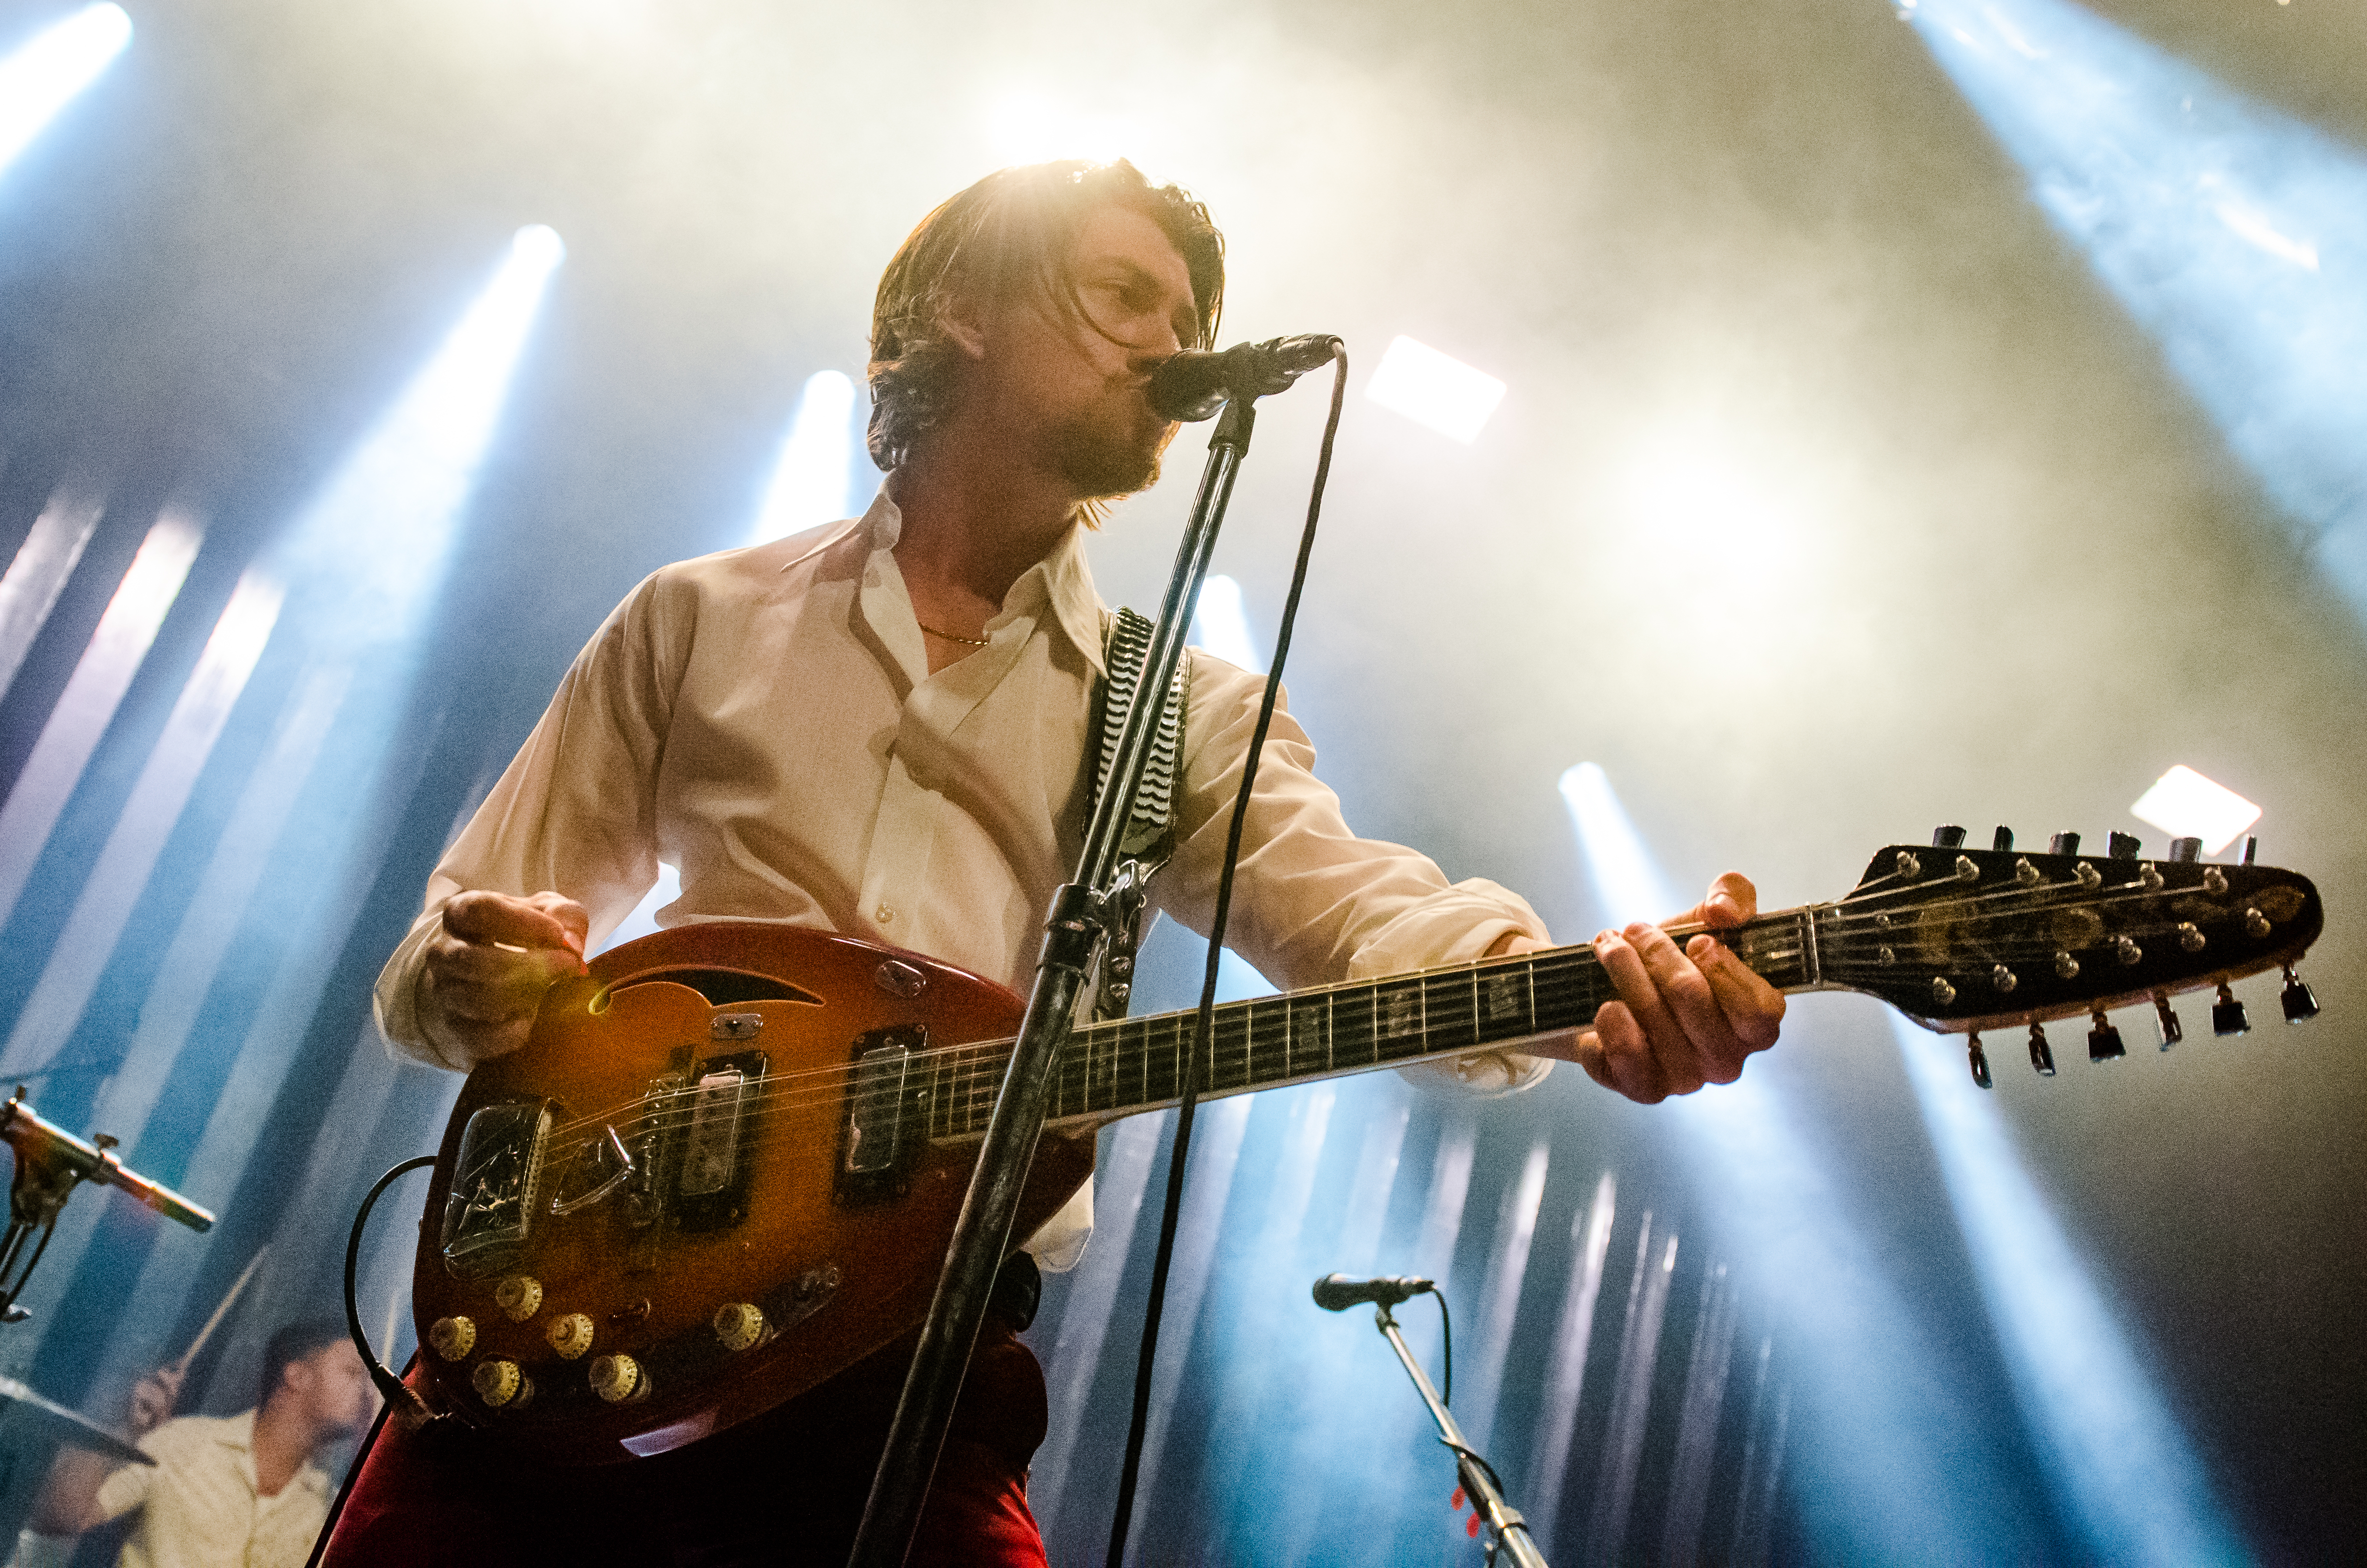 arctic monkeys by ben kaye 9 Live Review: Arctic Monkeys Check into Brooklyn Steel with New Music (5/9)